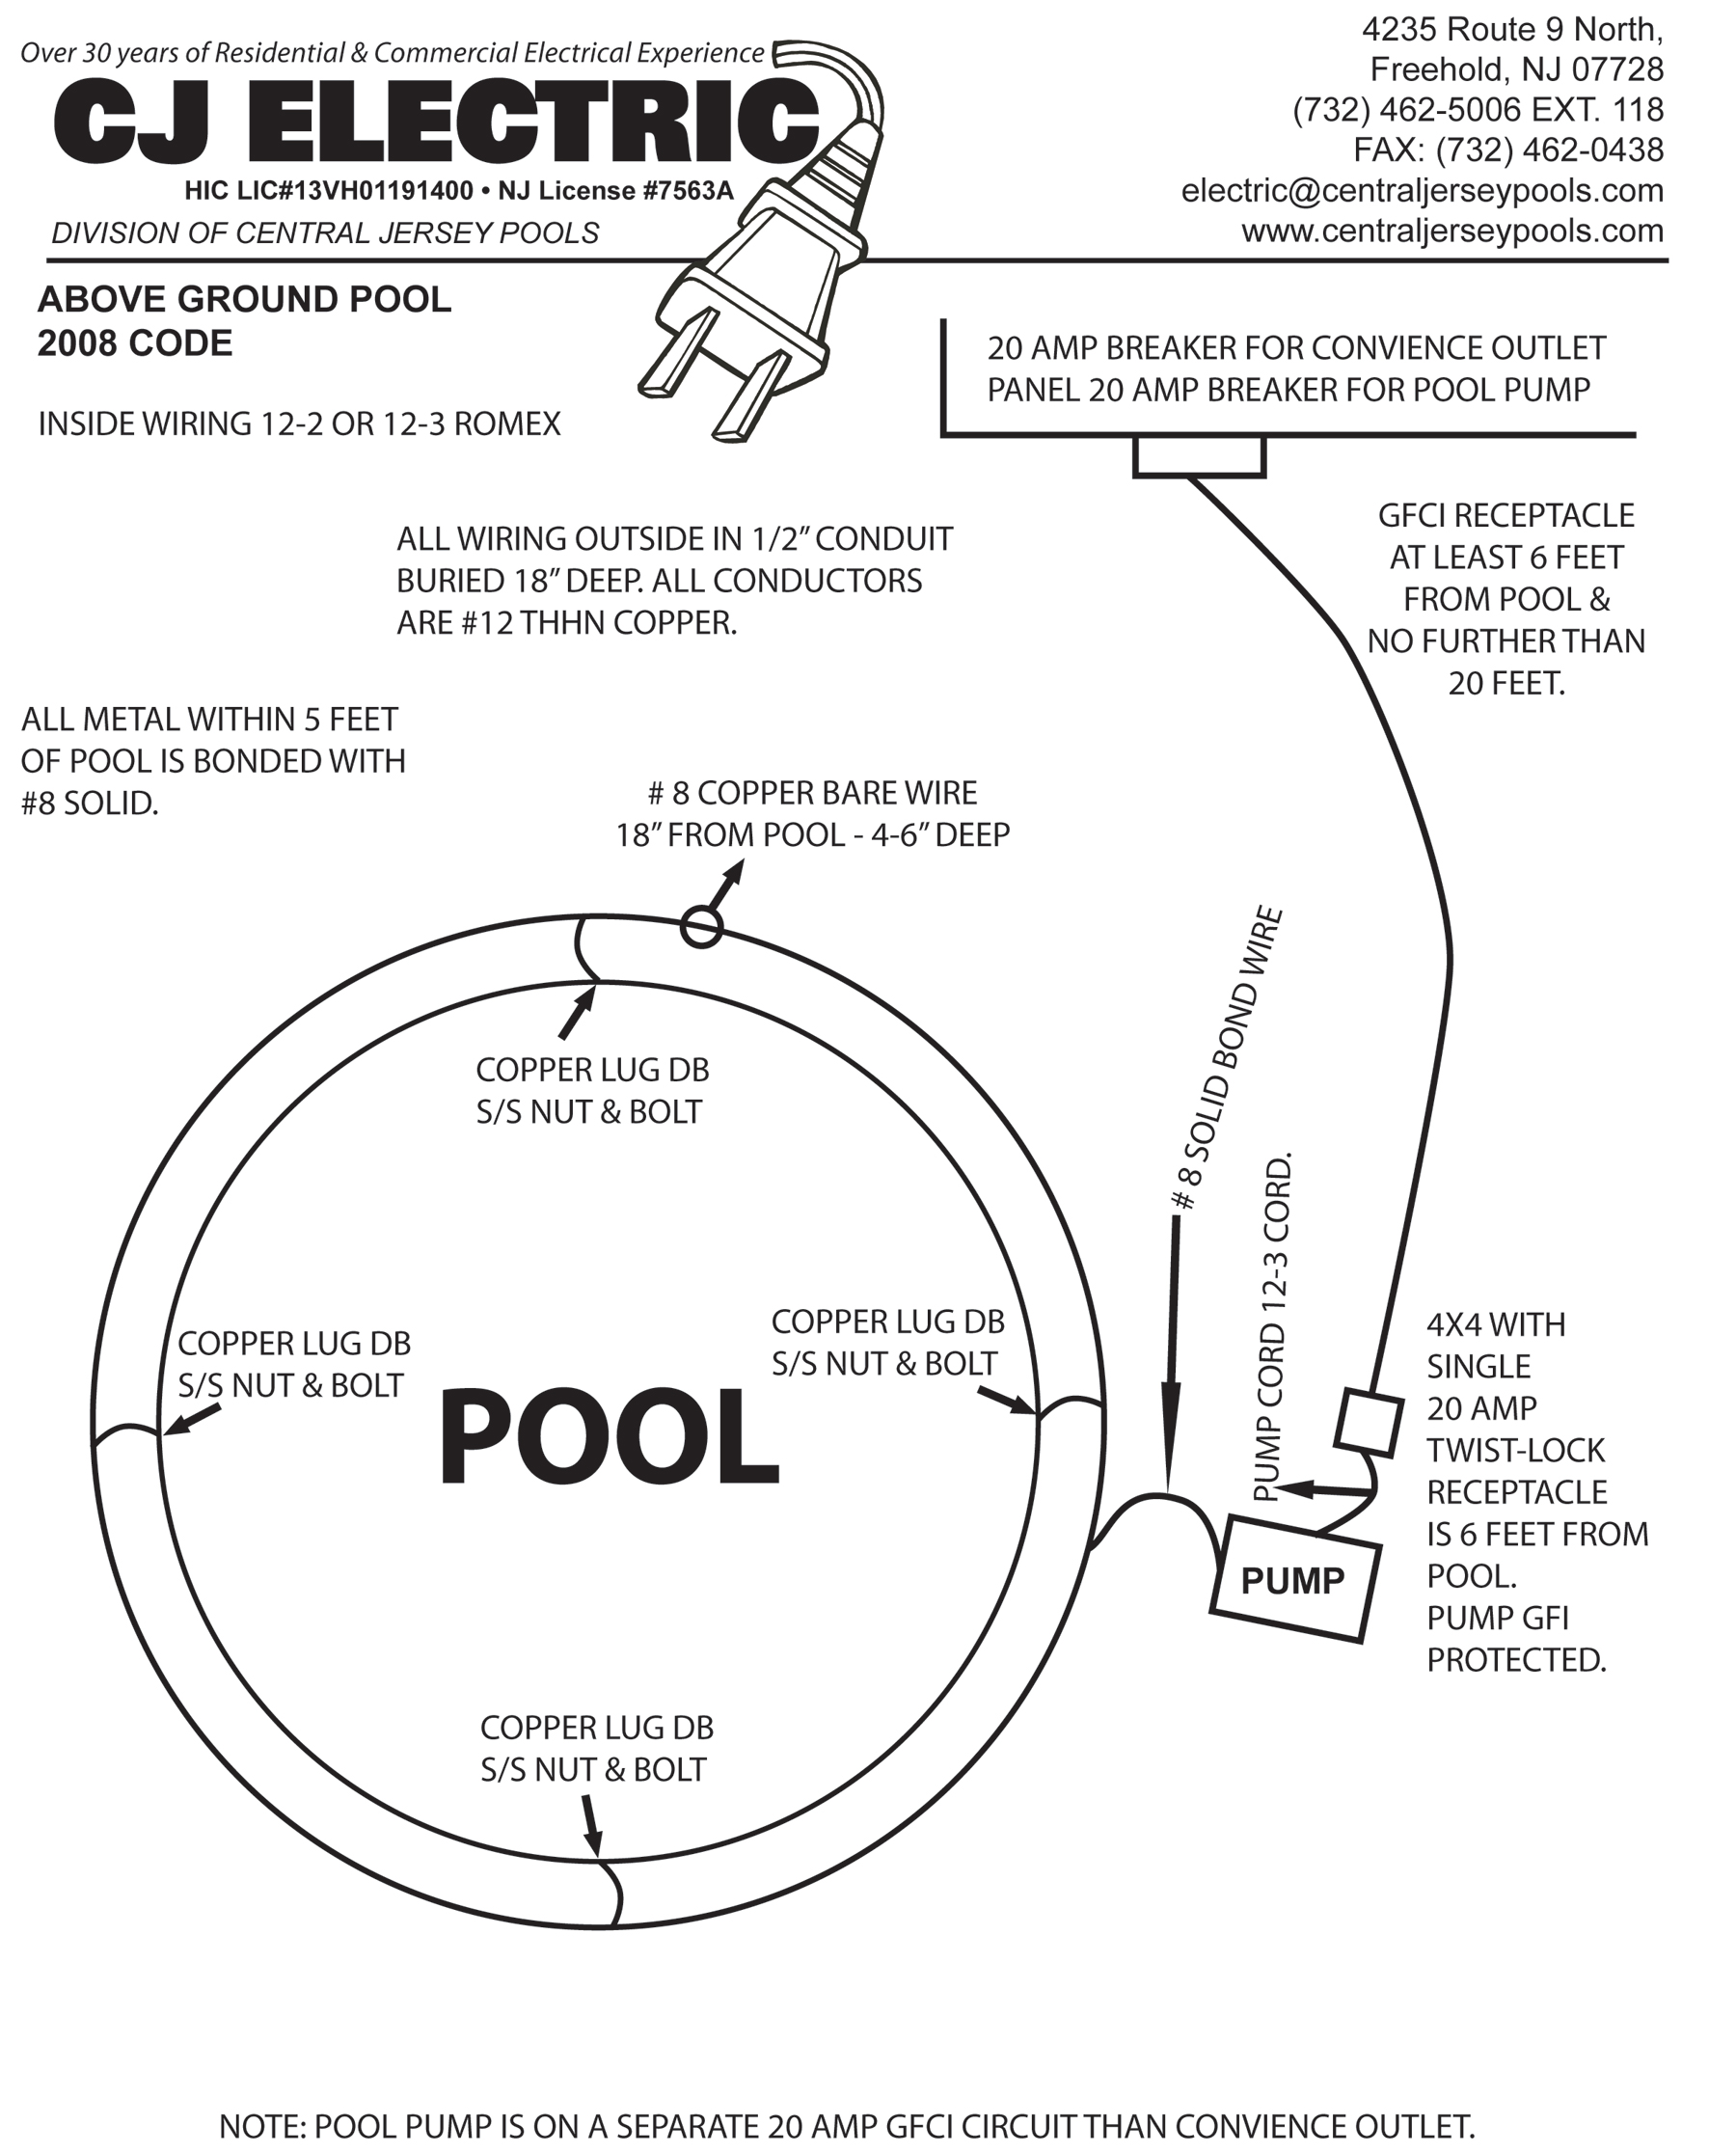 pool wiring code diagrams wiring diagrams pool pump wiring diagram pool wiring code diagrams [ 1800 x 2232 Pixel ]